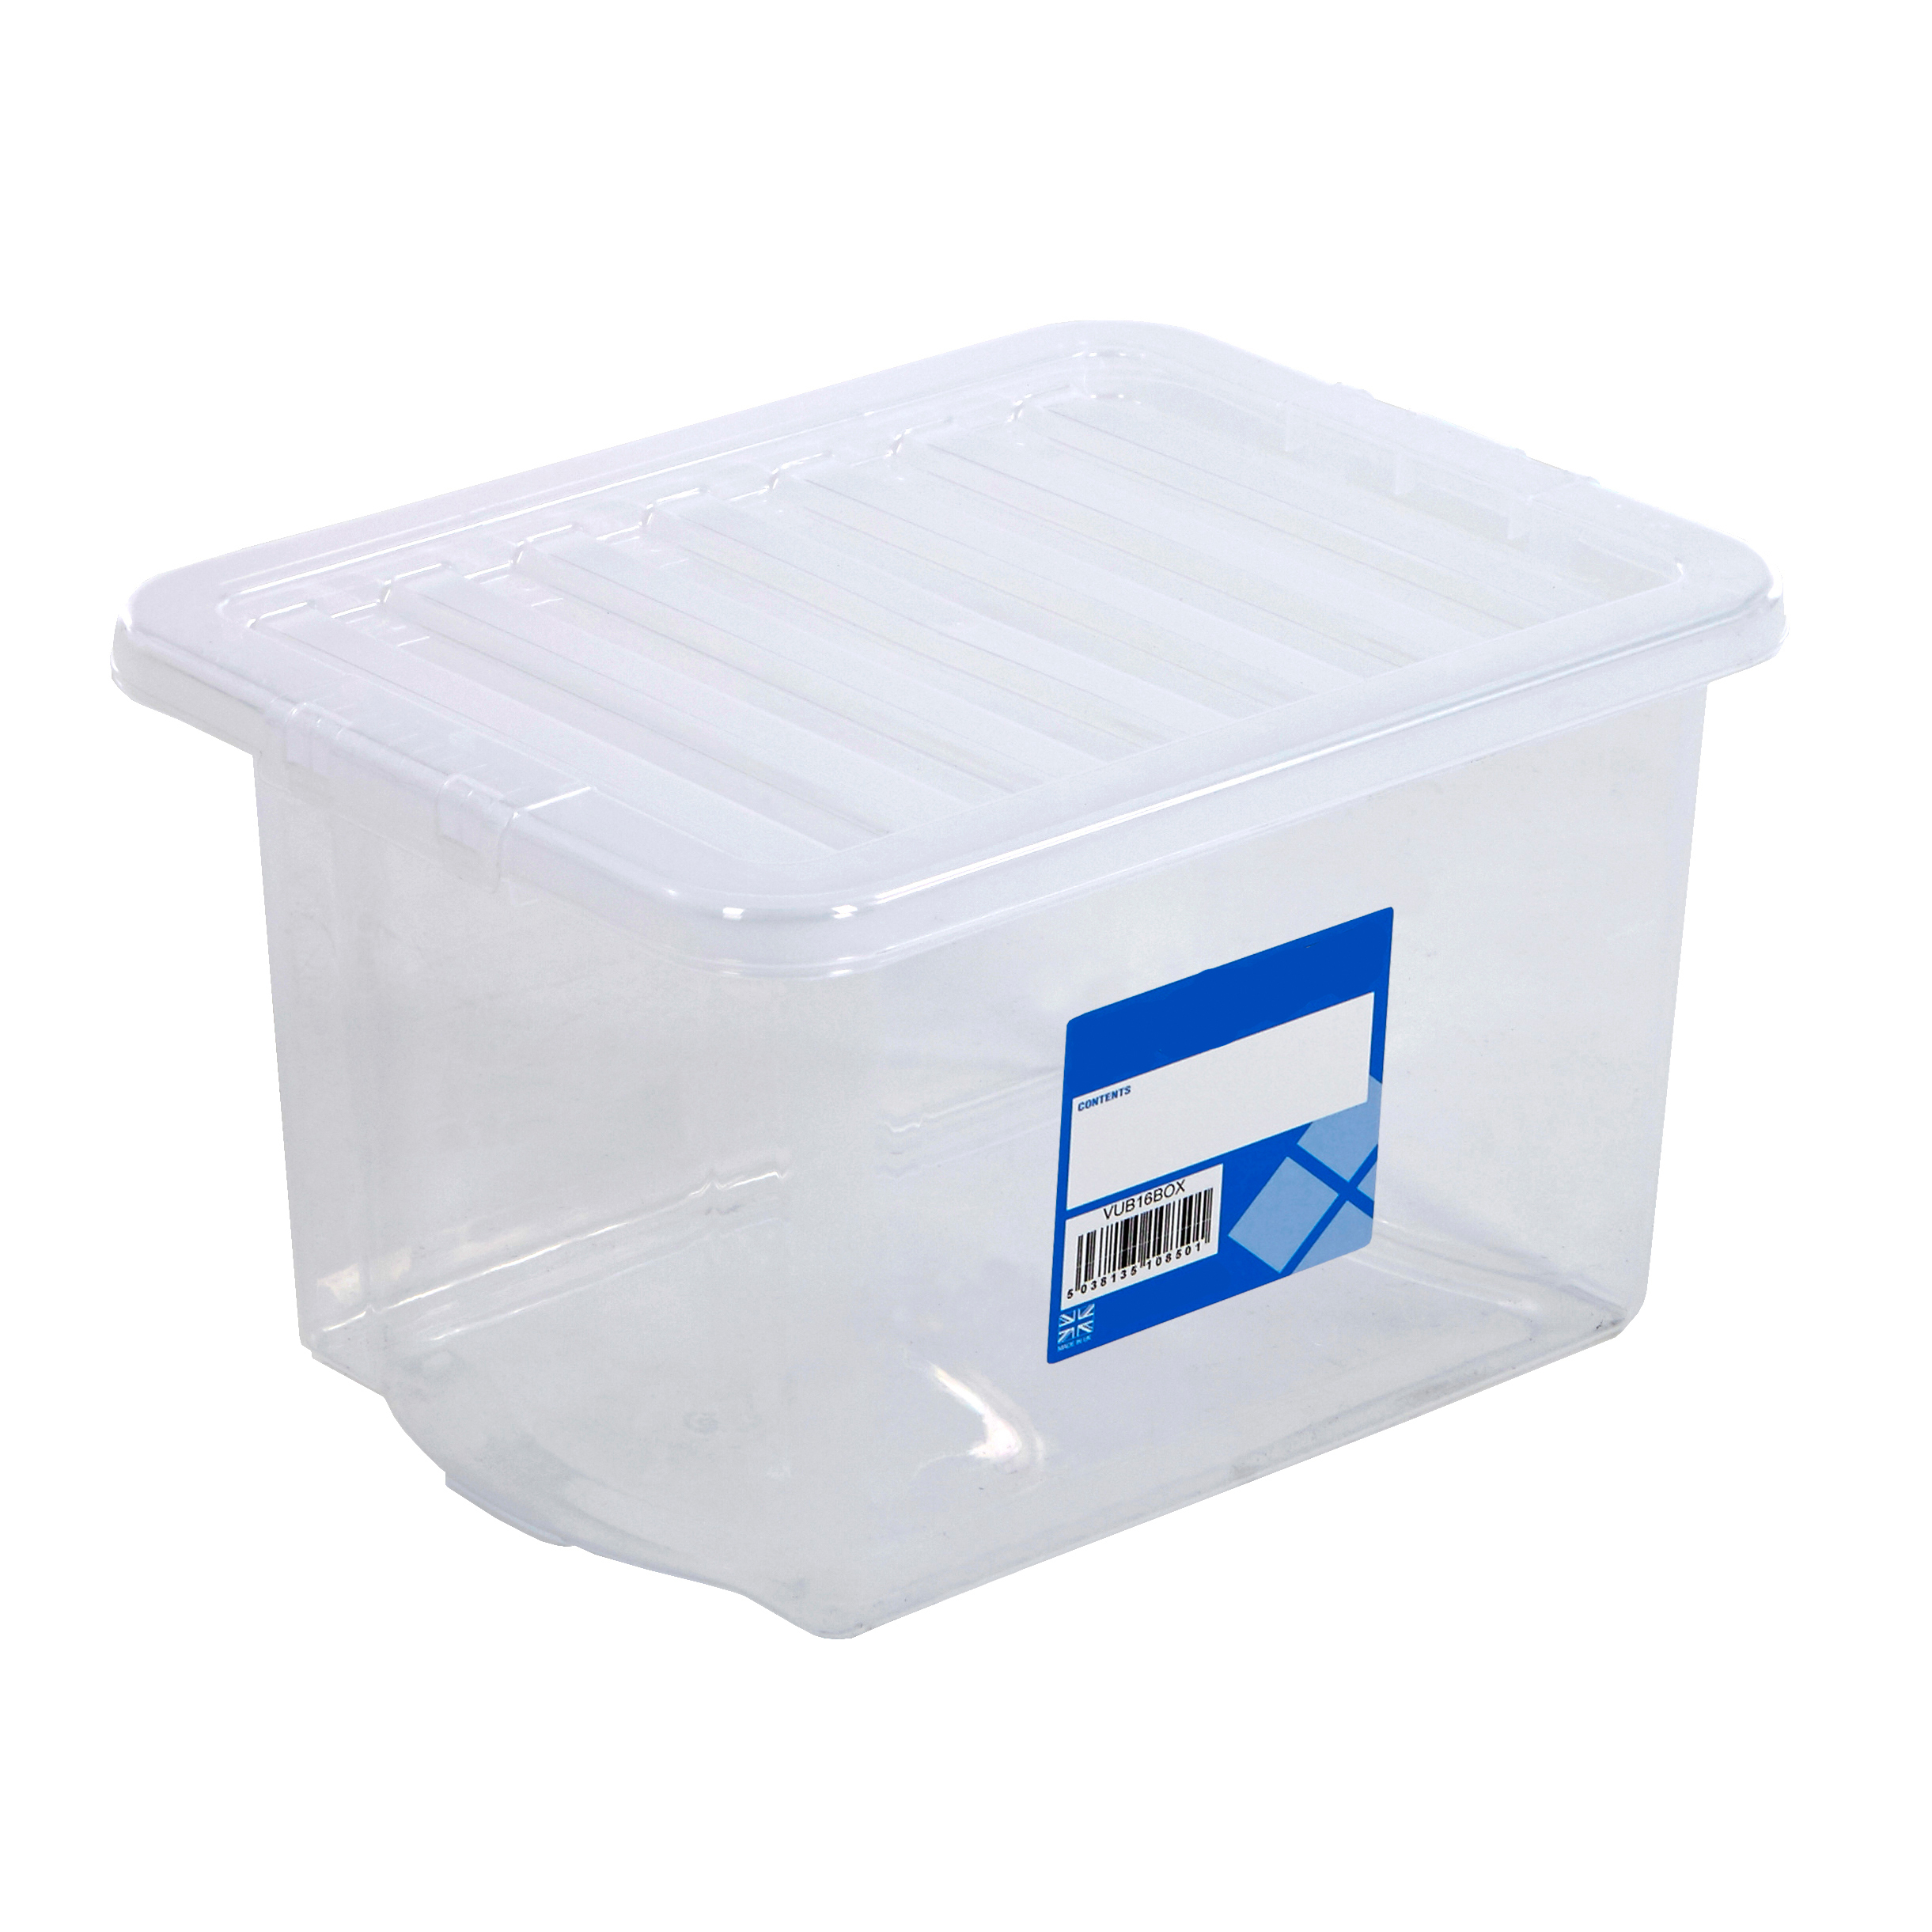 Plastic Containers With Lids 24 Litre Storage Boxes Clear Plastic Containers With Lids